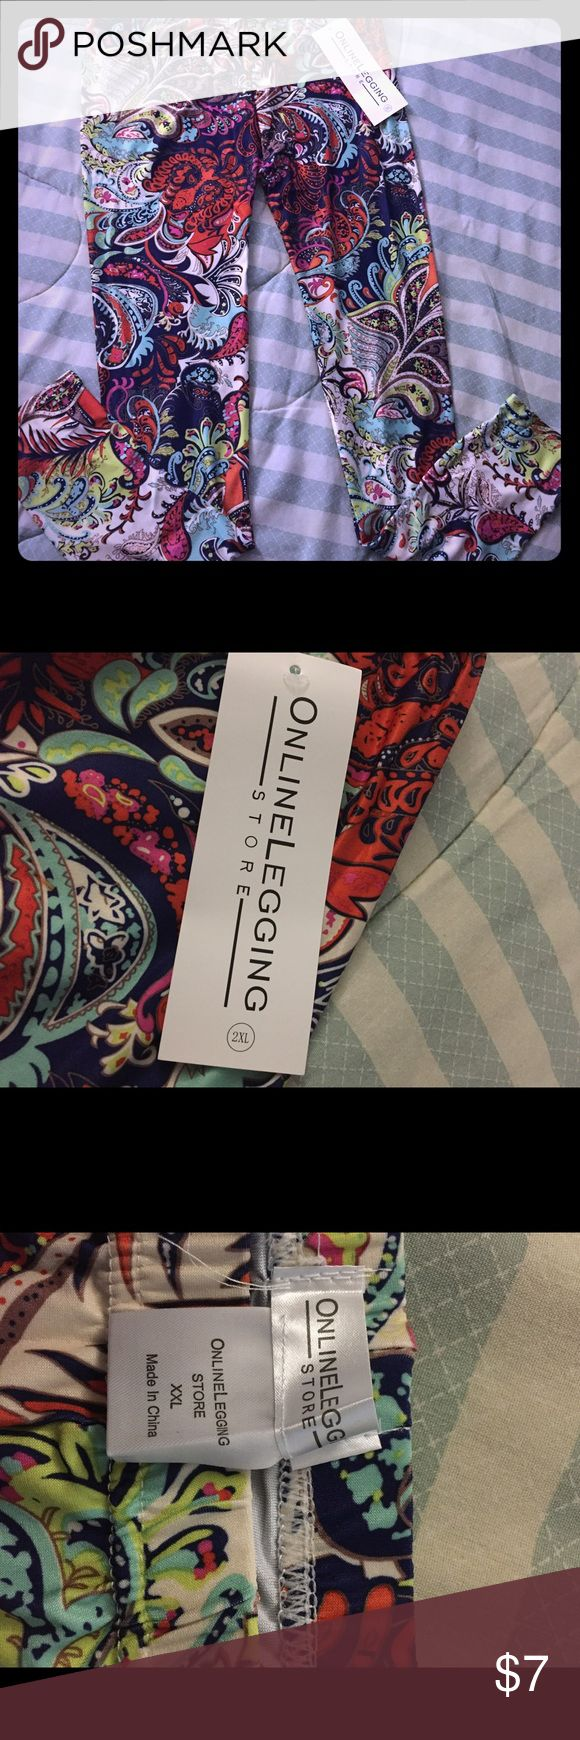 Multicolored leggings from online leggings store Multicolored leggings from online leggings store in size xxl. They could probably fit someone who wears XL. New in original packaging. Bundle to save! online leggings store Pants Leggings